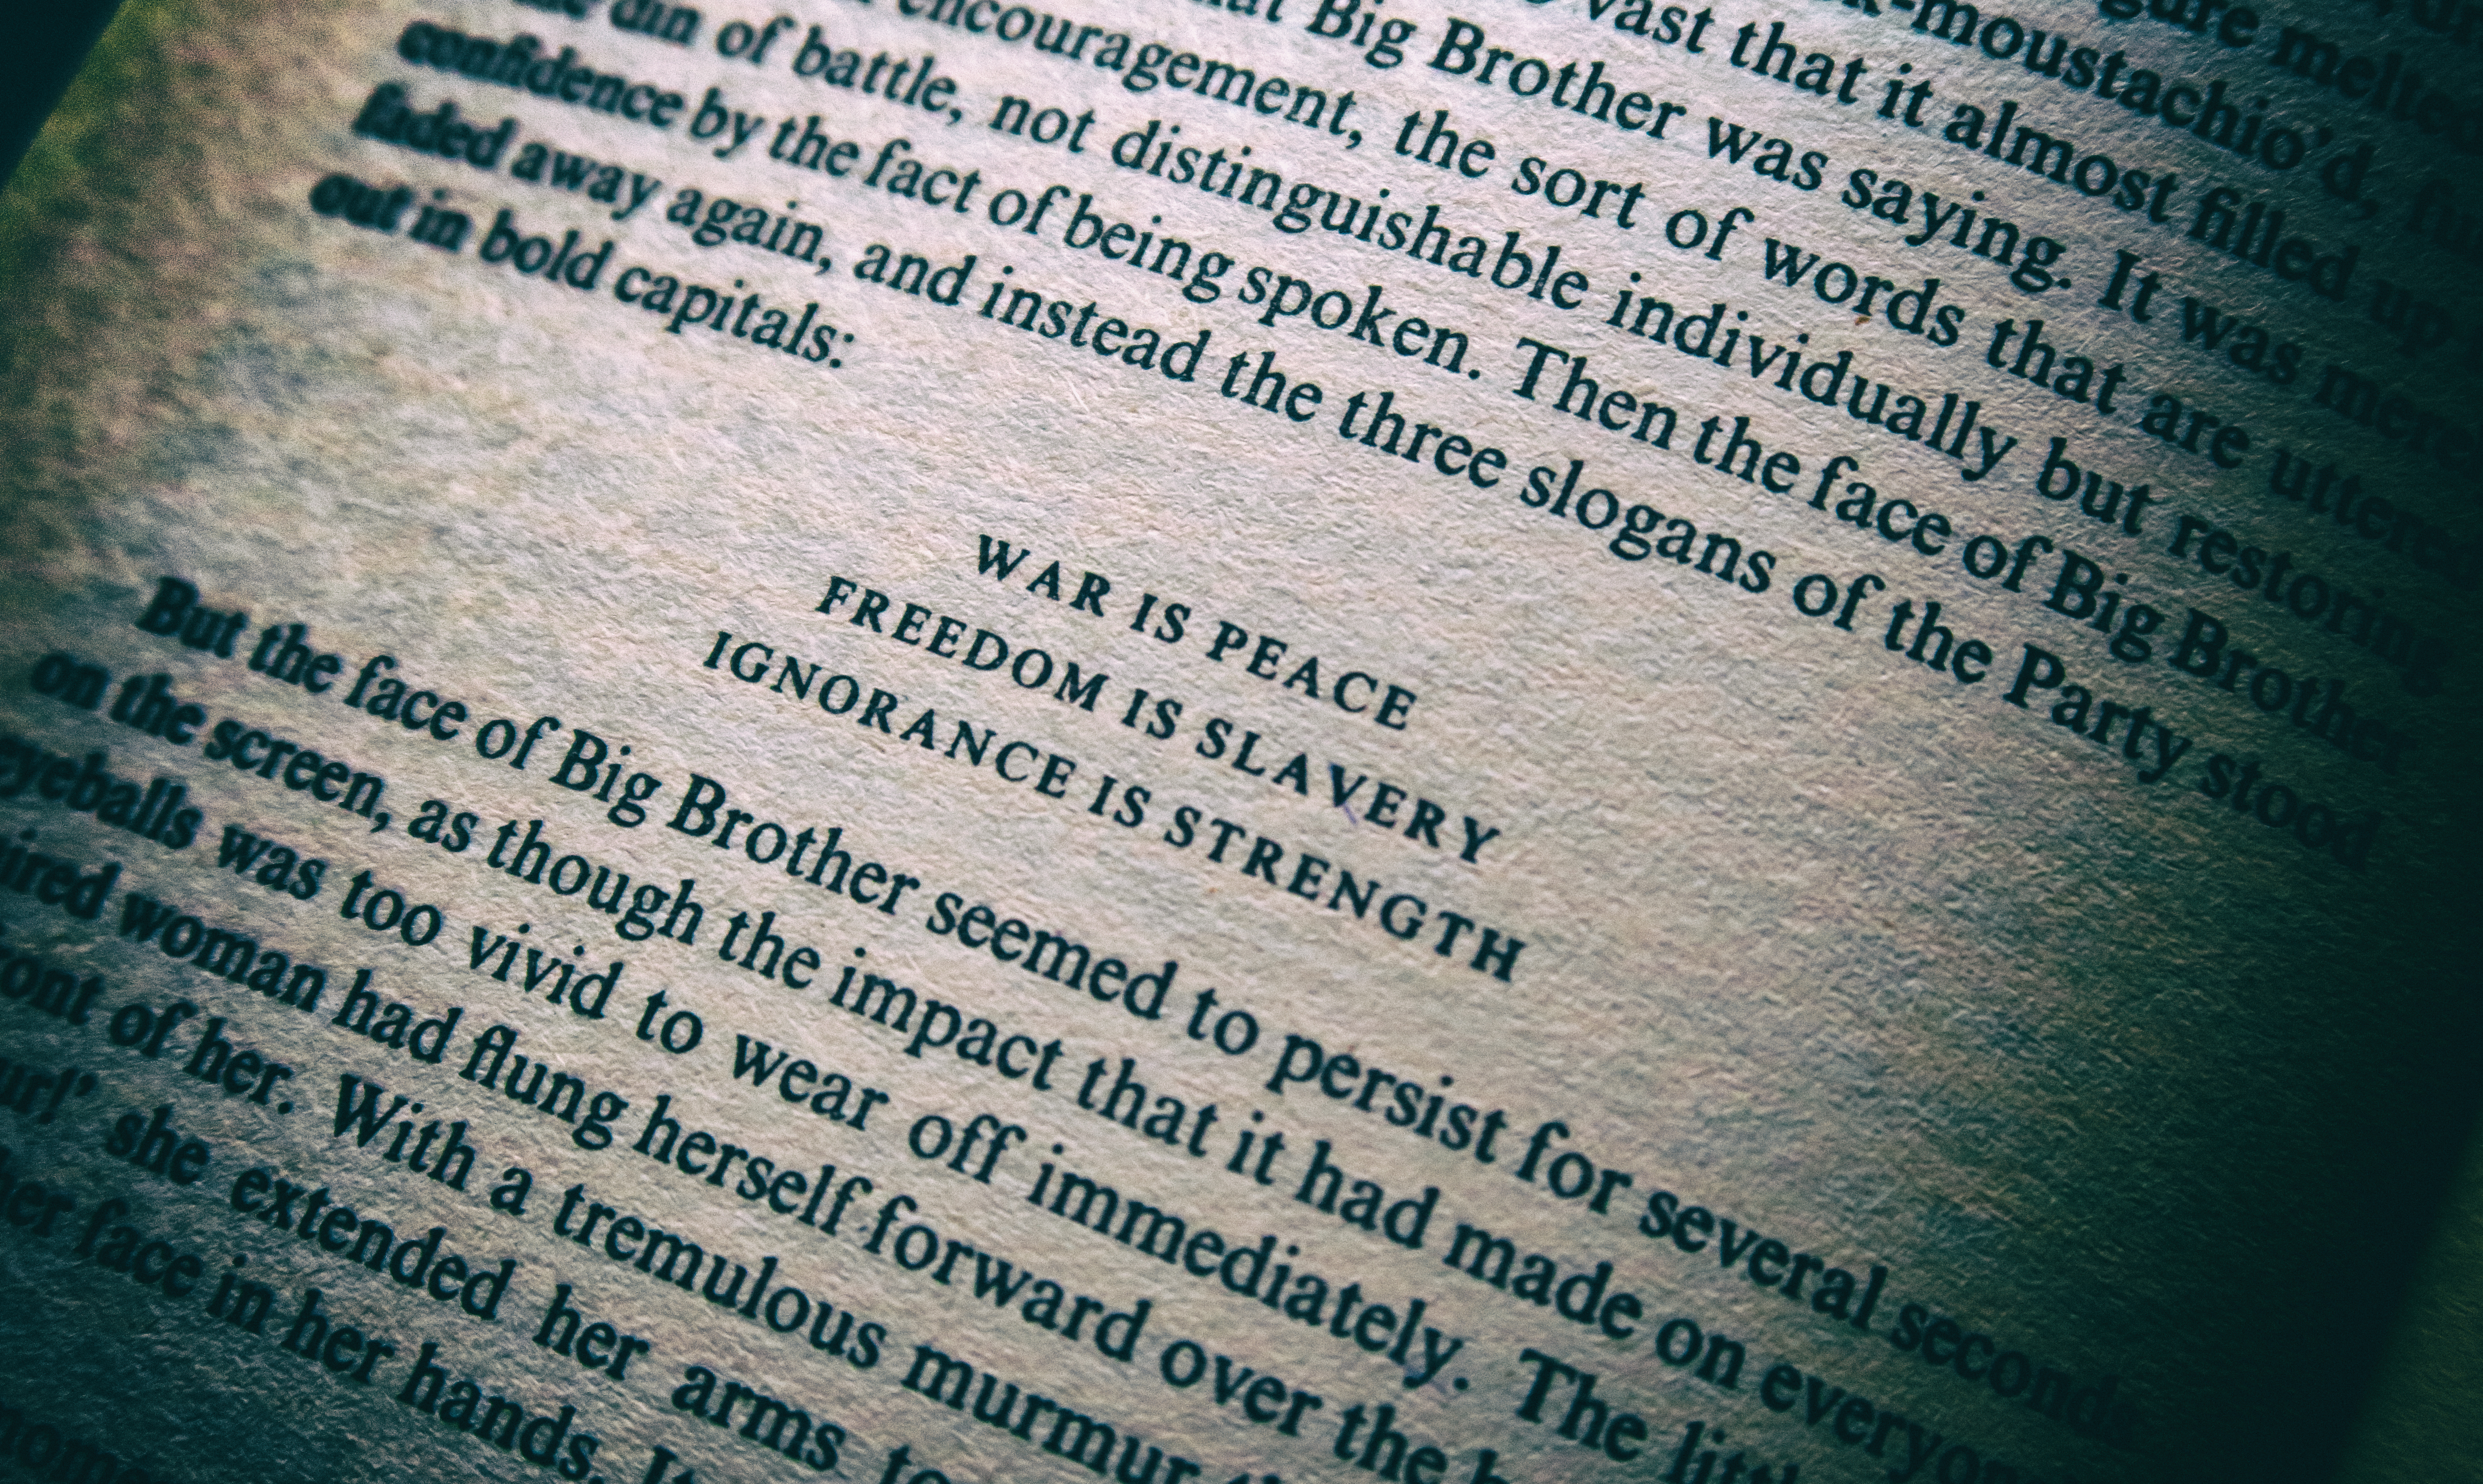 HousingITguy,Project365,2nd 365,HotpixUK365,Tone Smith,GoTonySmith,365,2365 one a day,Tony Smith,Hotpix,Eric Blair,George Orwell,Quote,War Is Peace,Freedom Is Slavery,Ignorance Is strength,book,literature,writing